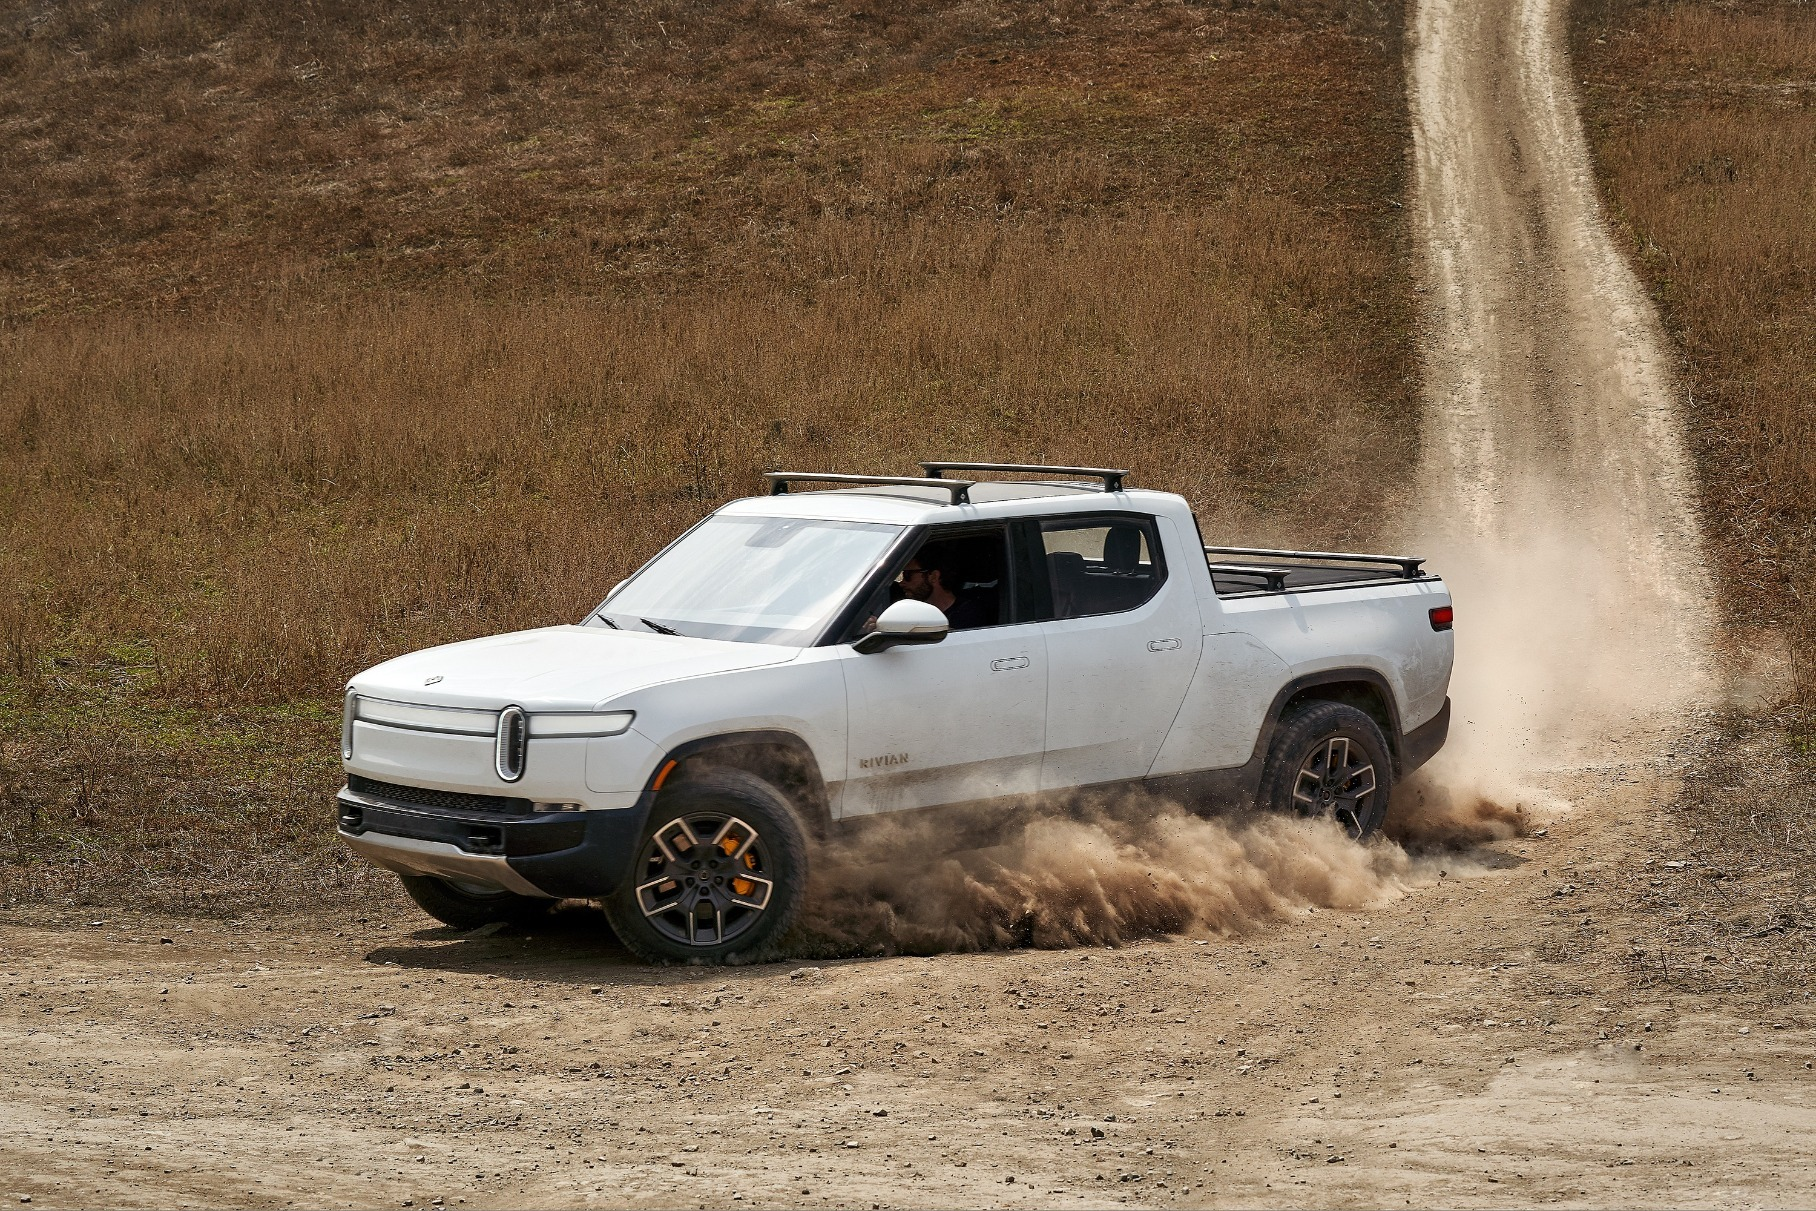 Rivian has shared a video of its all-electric R1T truck running around in a desert in Arizona, USA, its engineering crew assessing the performance of invertors and other systems.